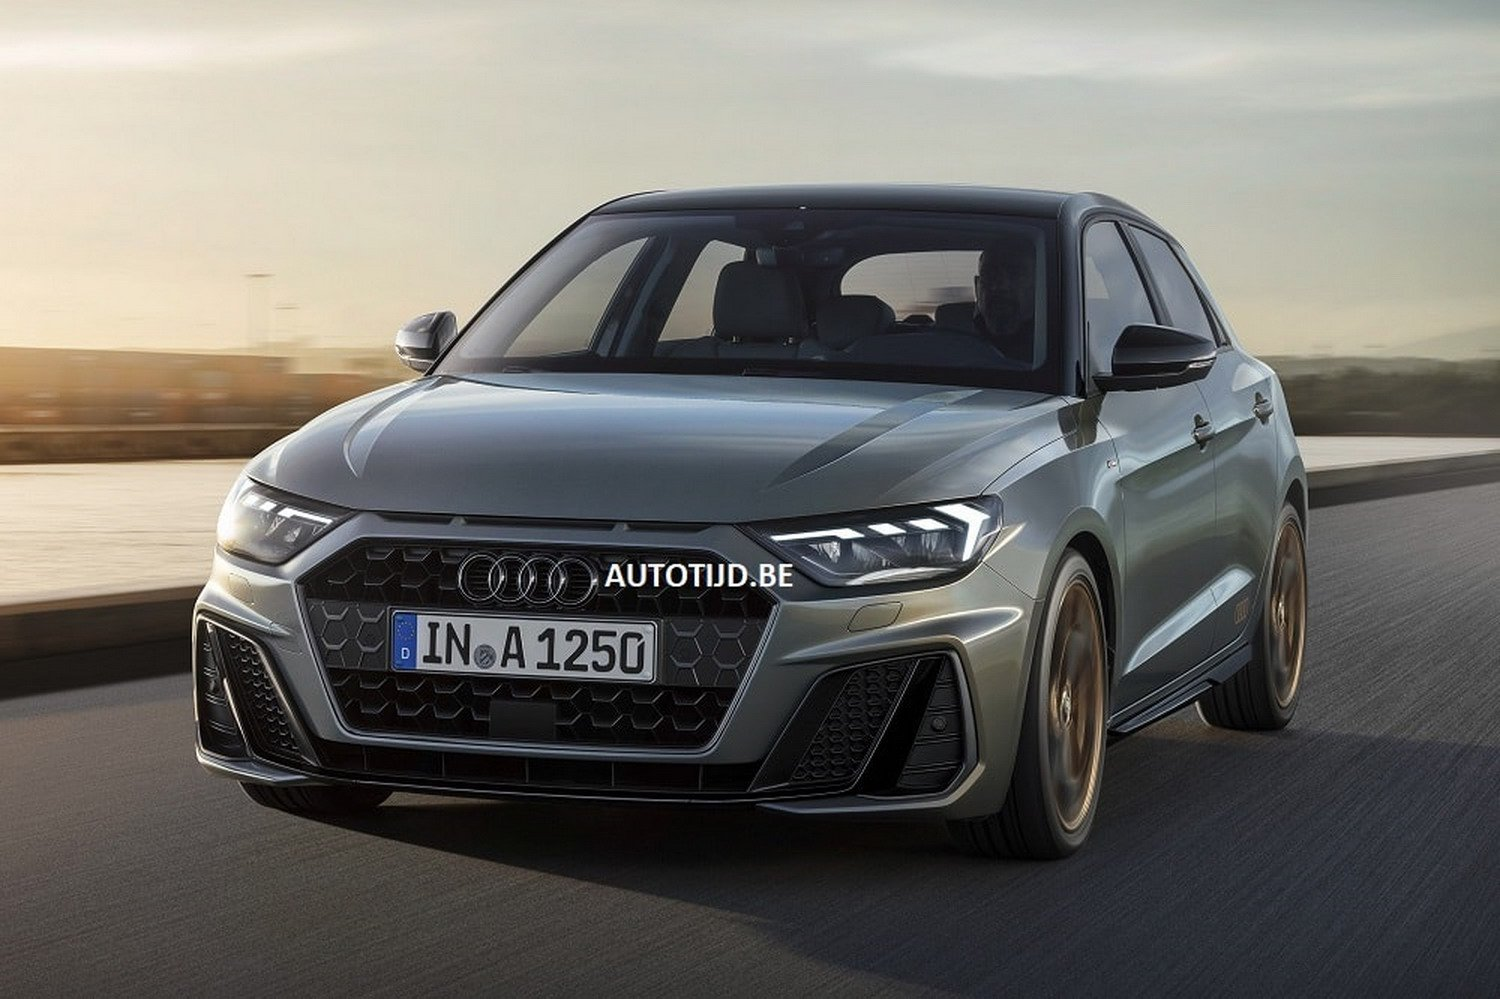 2019 audi a1 leaked official photos reveal sporty design autoevolution. Black Bedroom Furniture Sets. Home Design Ideas